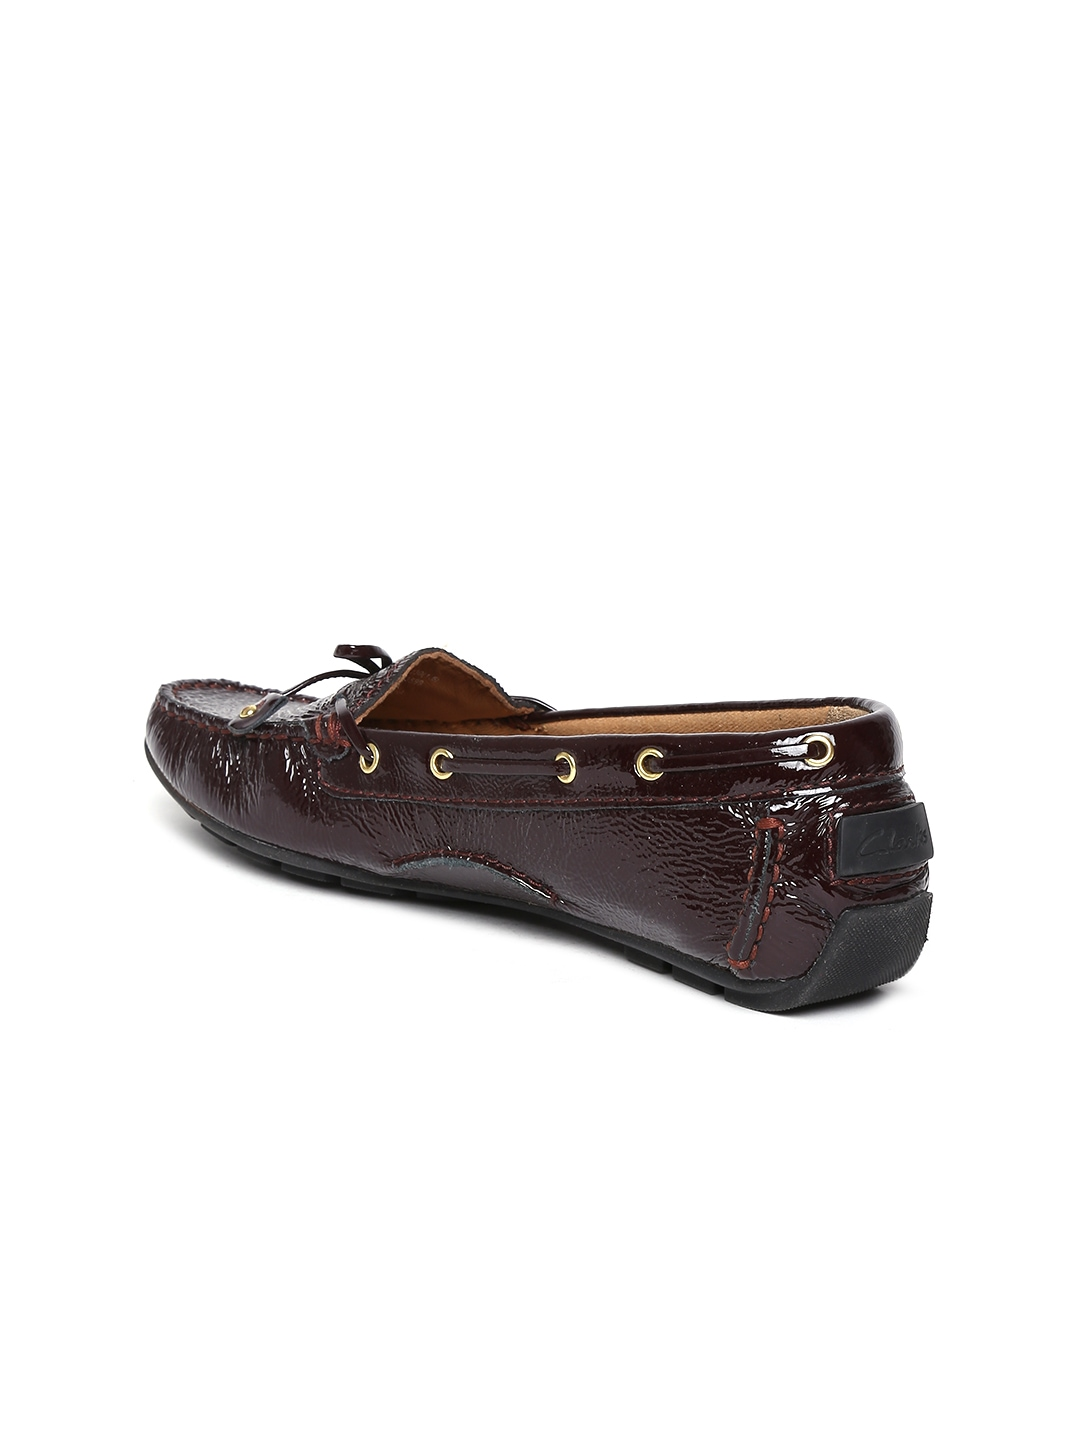 Can You Clean Leather Boat Shoes